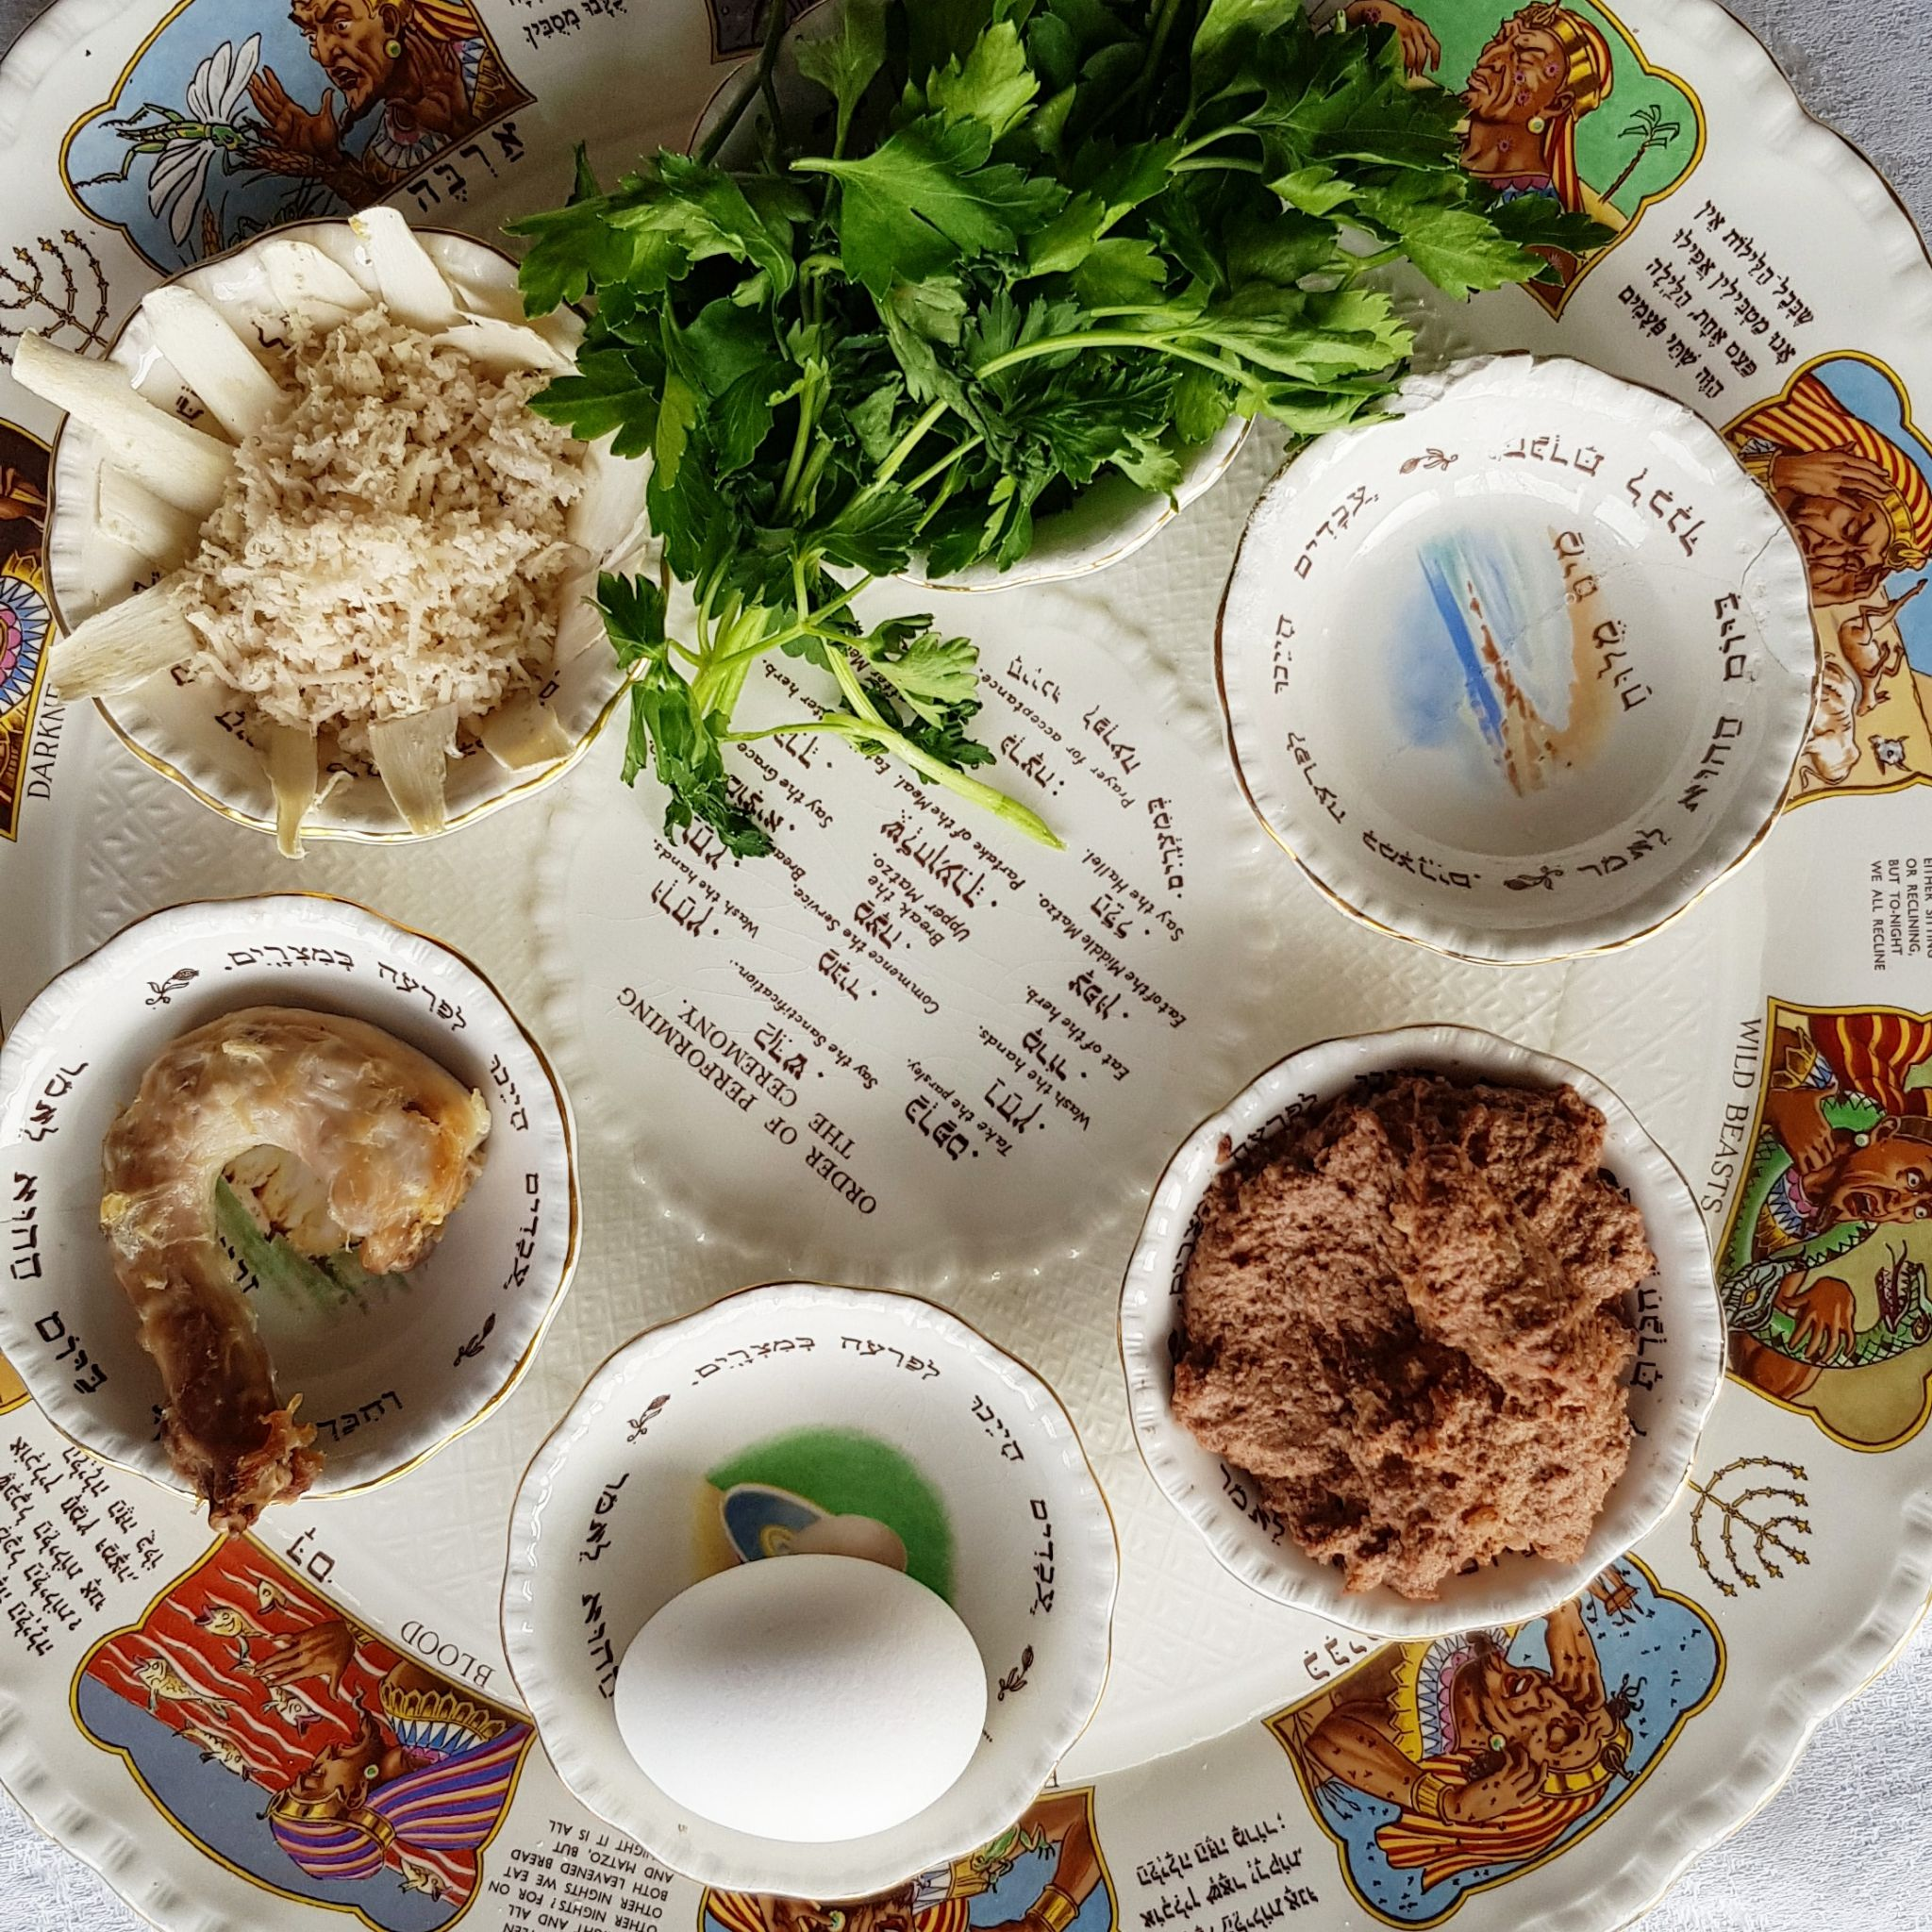 Passover food as depicted on the Passover seder plate